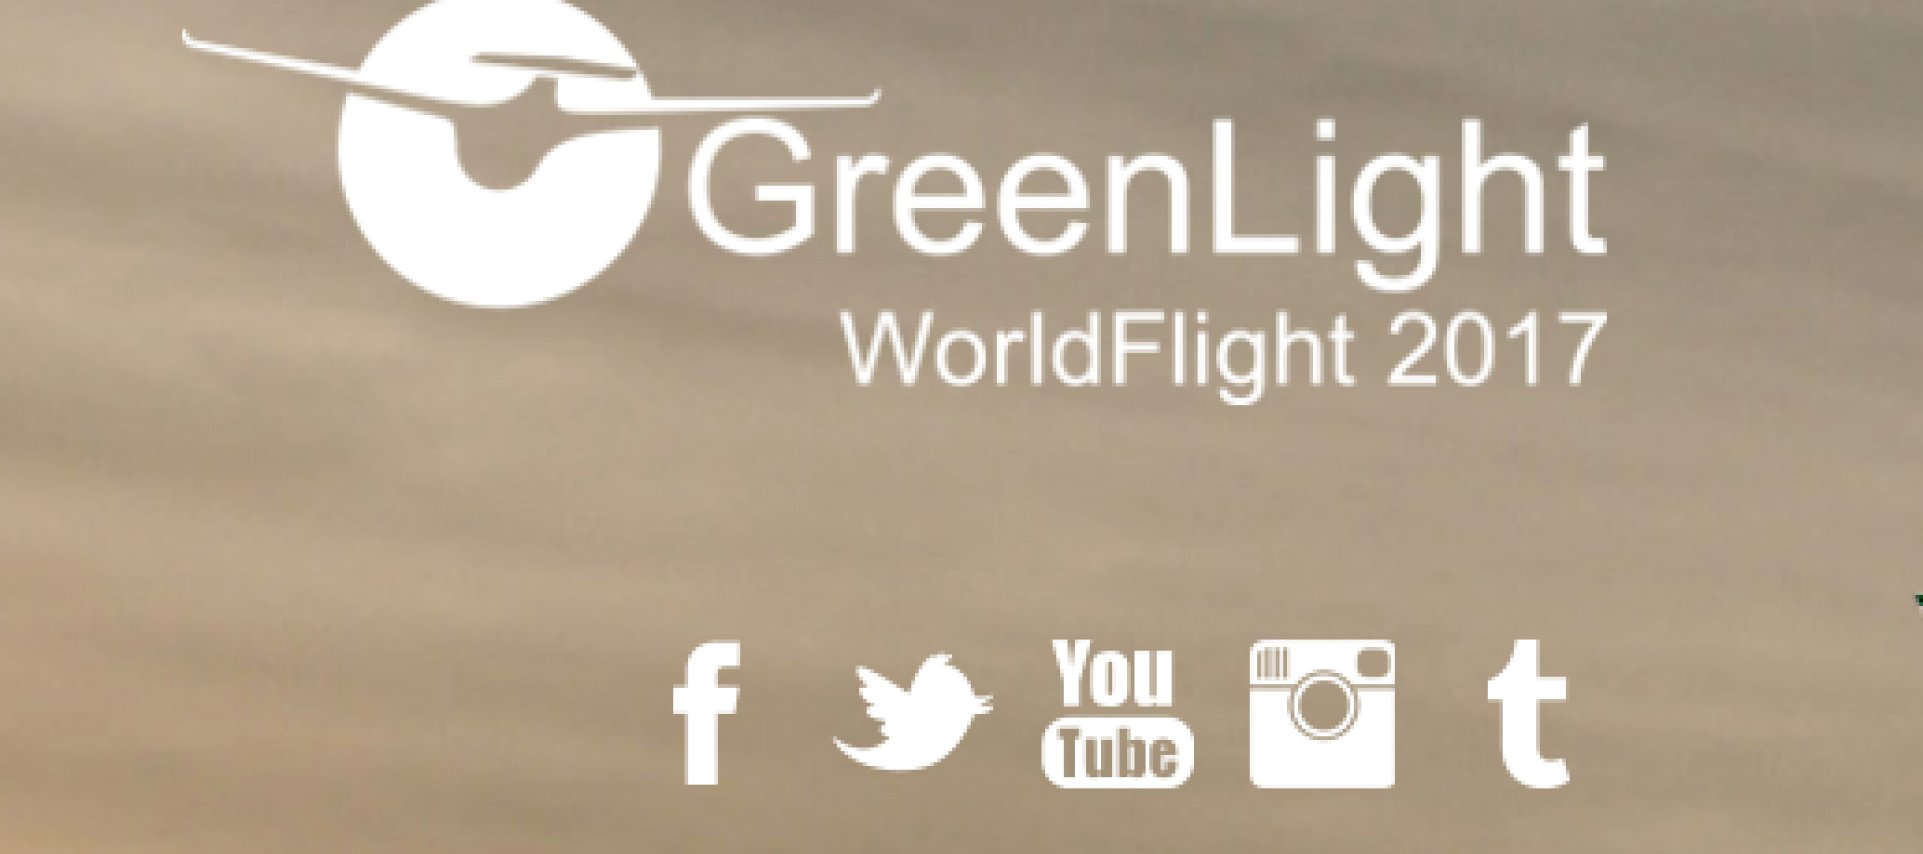 Začetek nove misije Green Light World Flight